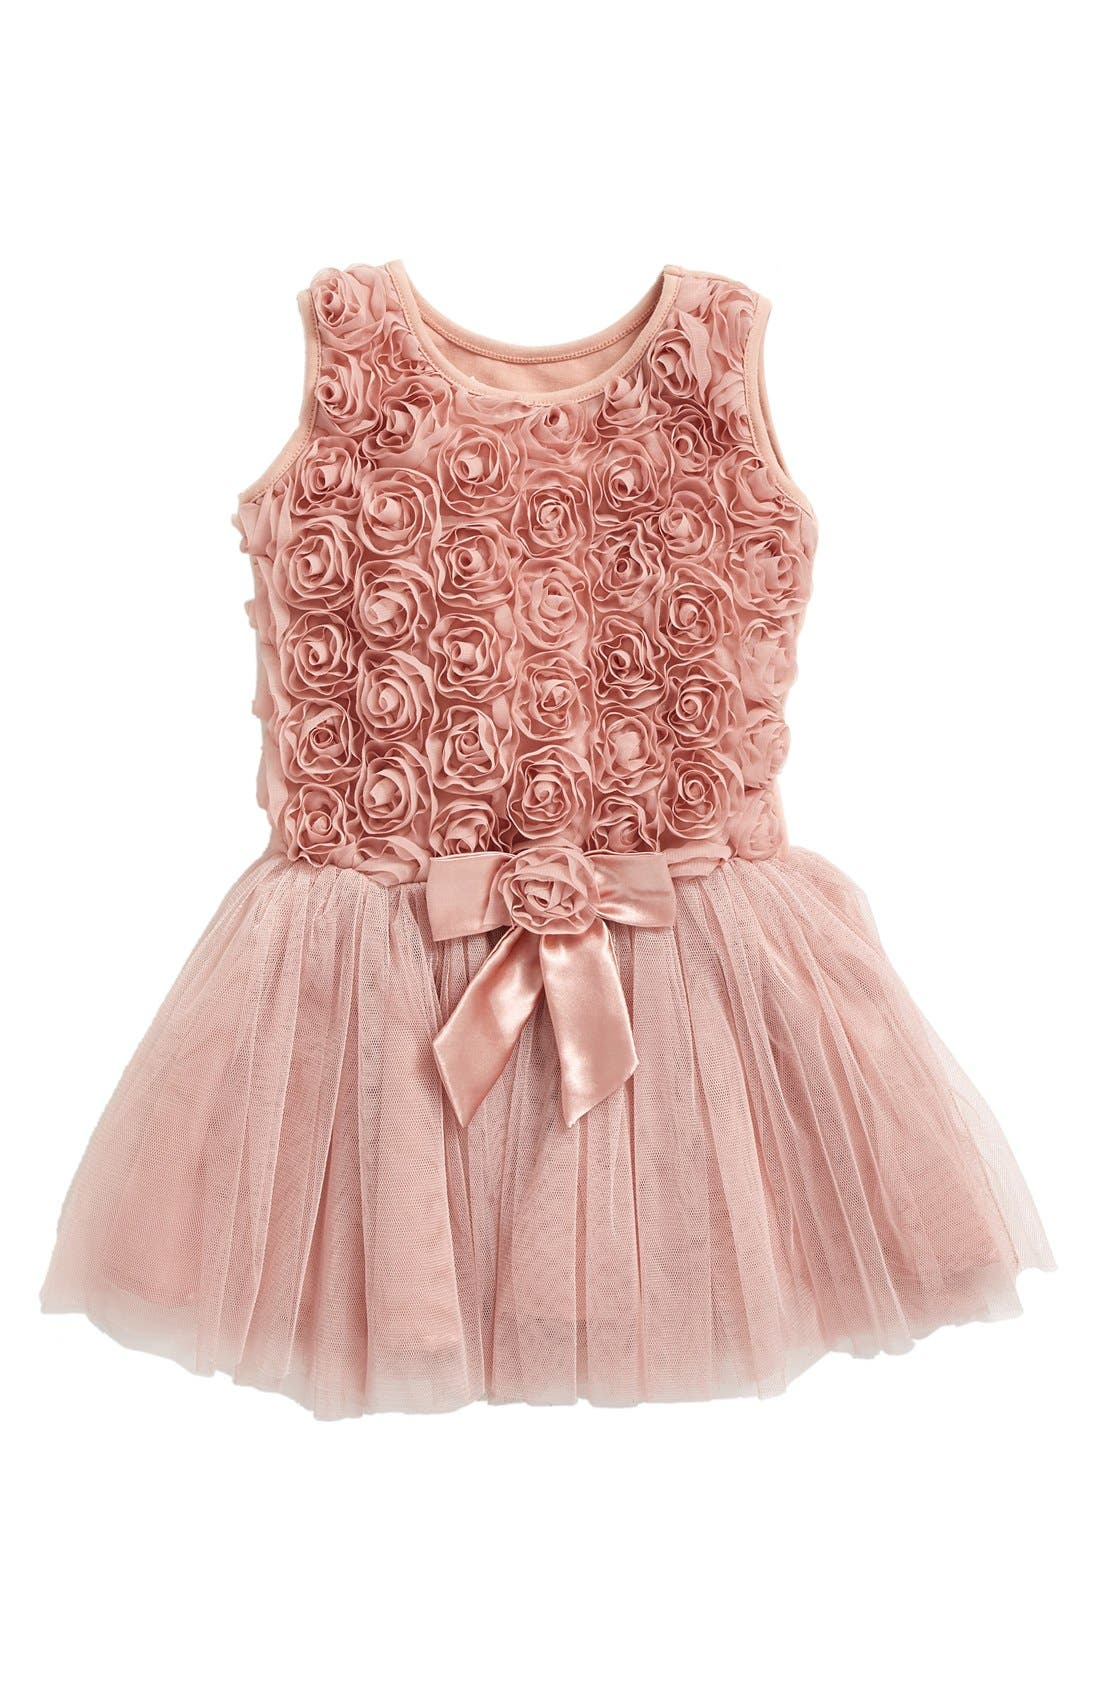 Ribbon Rosette Tutu Dress,                         Main,                         color, DUSTY PINK